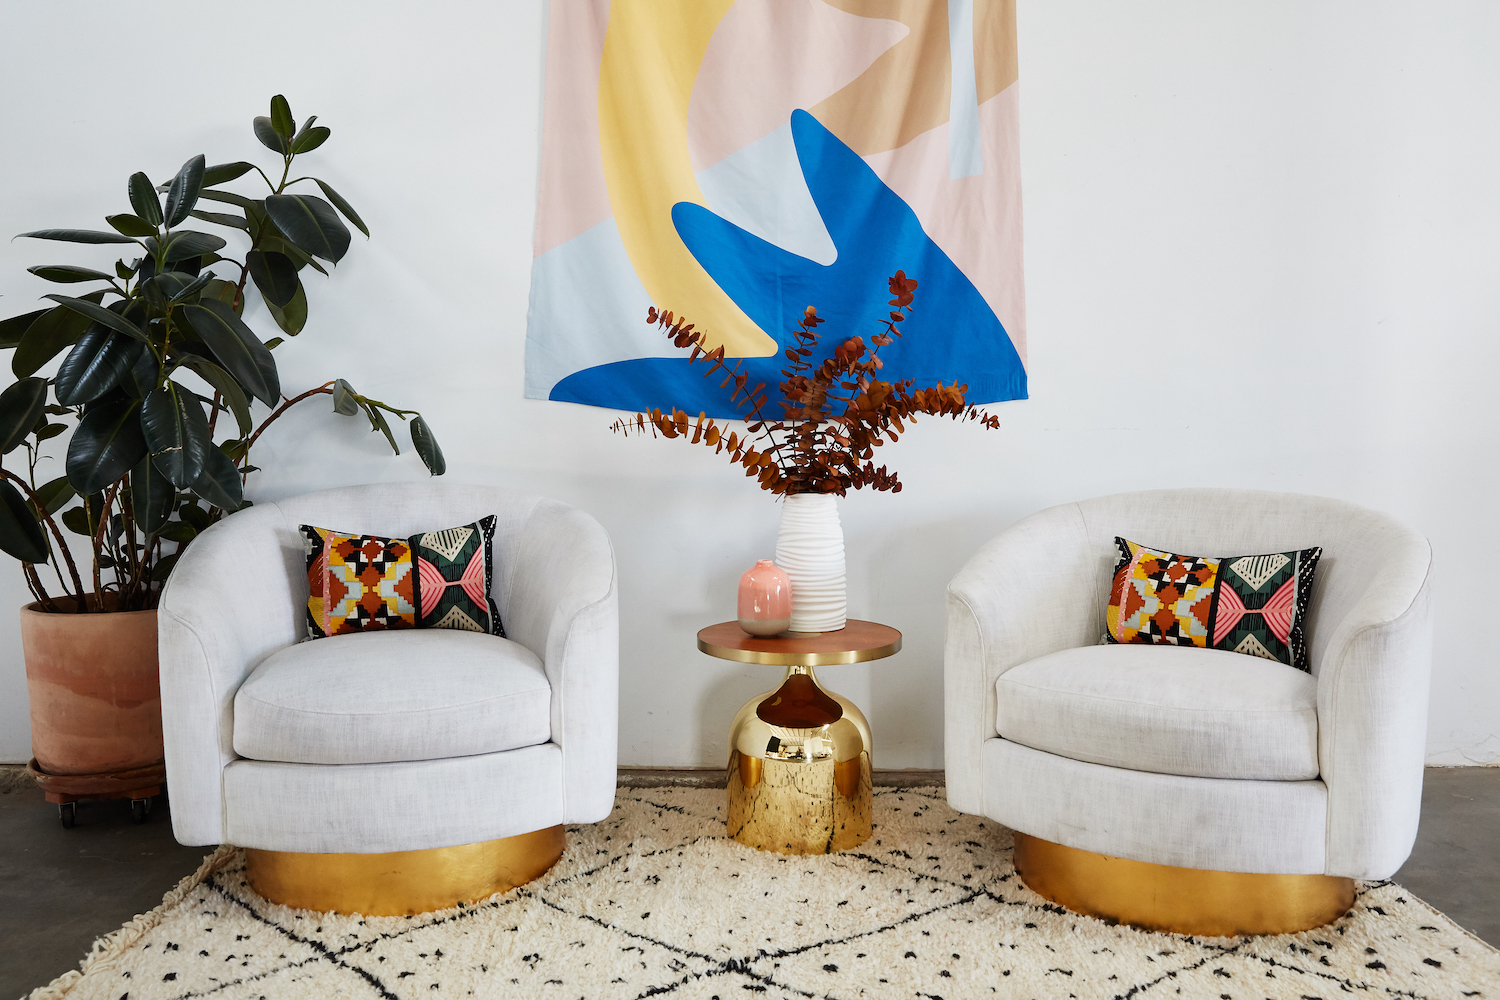 DIY Guide: 3 Easy Ways To Hang A Wall Tapestry - Society6 Blog